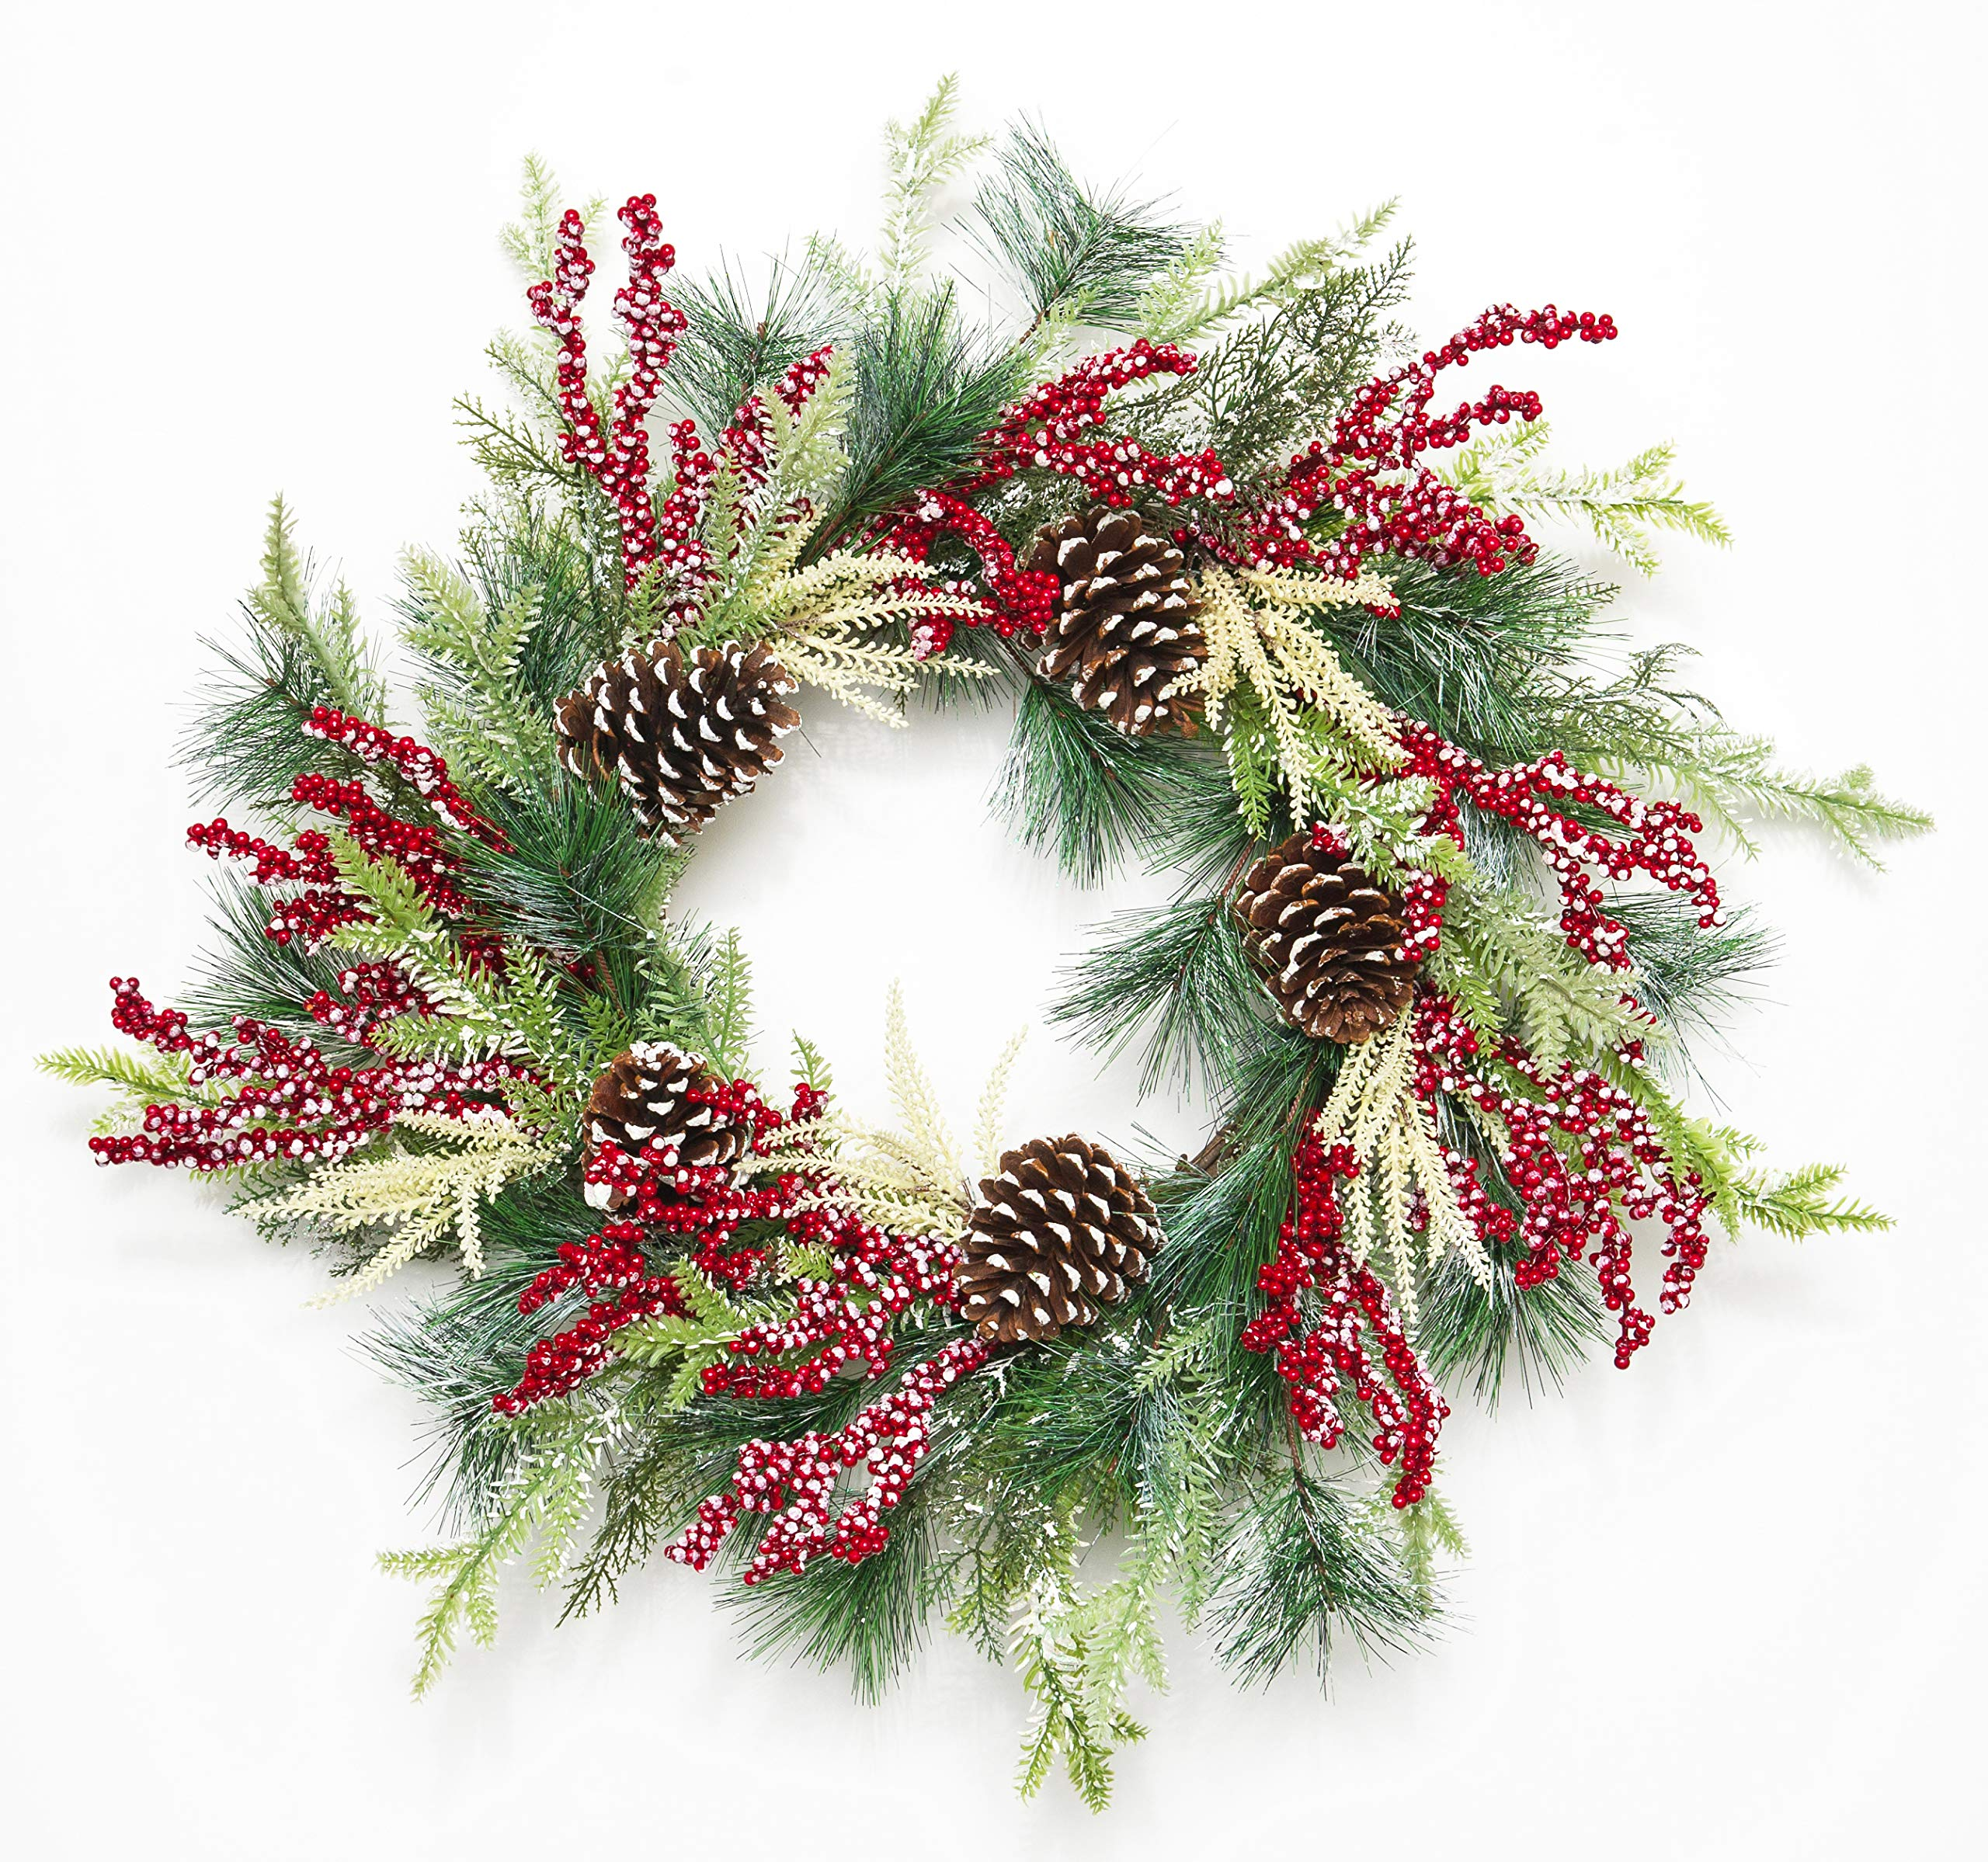 Pinecones Eucalyptus Leaves Holiday Front Door Wreath Simple Christmas Wreath Winter Wreath with Green Pine Needles and White Accents